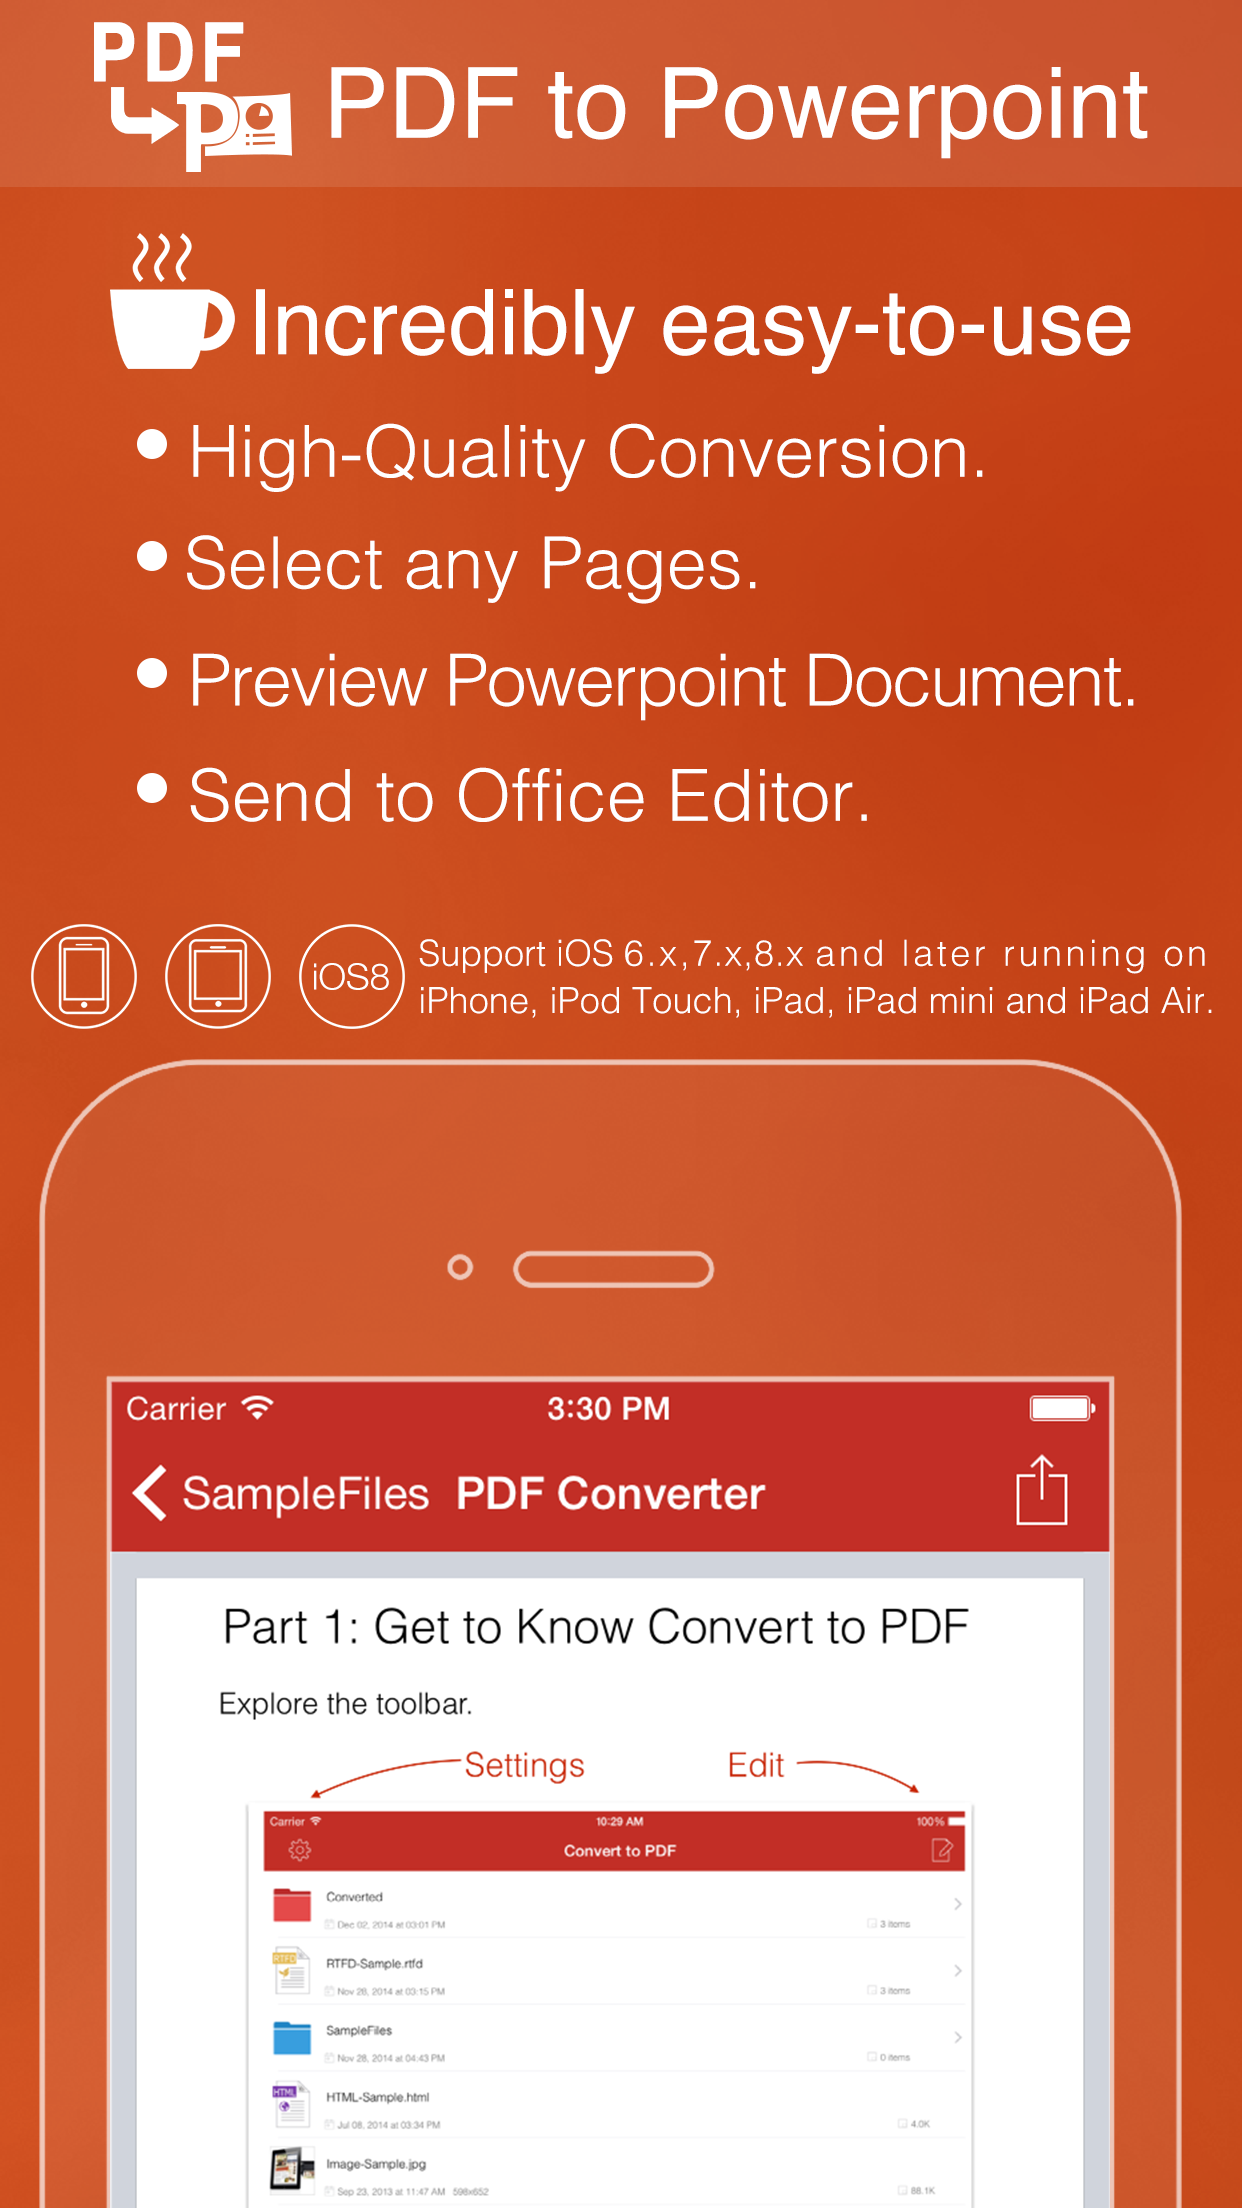 PDF to Powerpoint for iPhone, iPad and other iOS devices - Convert